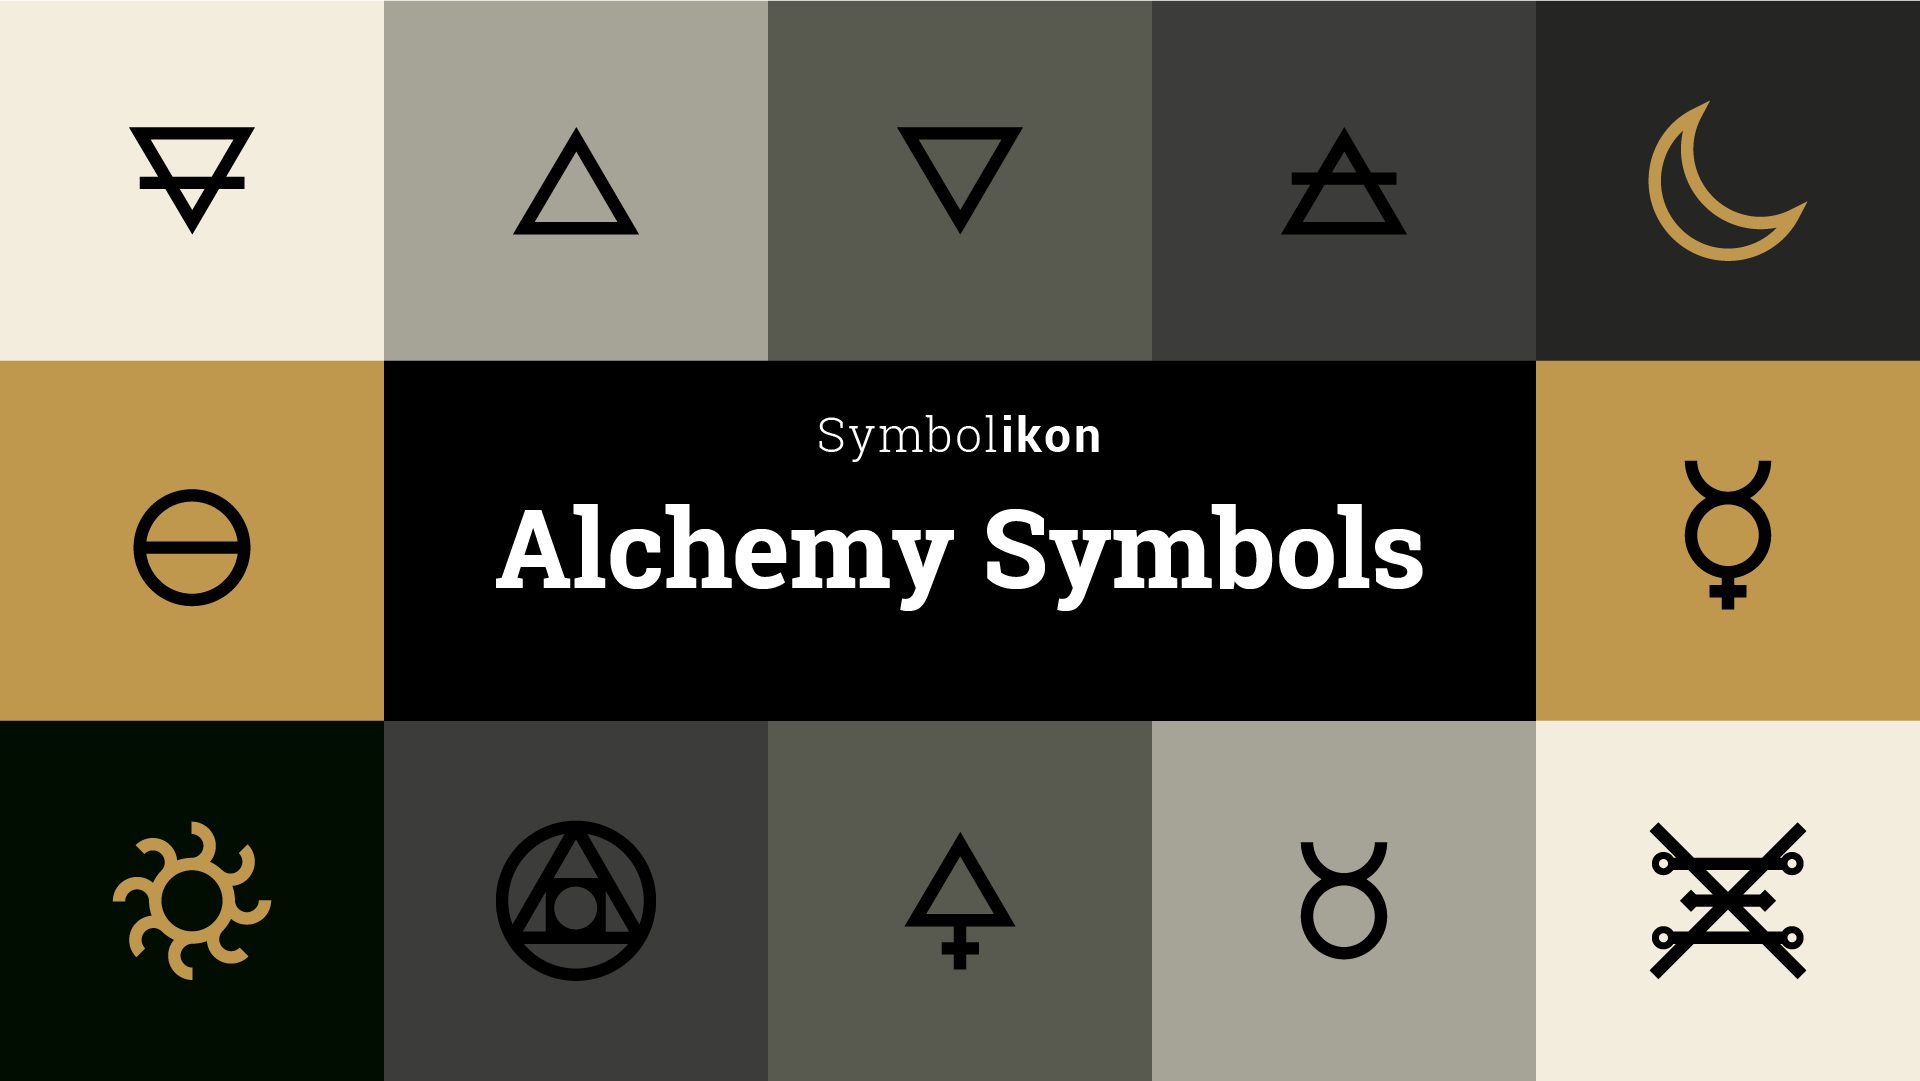 Alchemy symbols meanings